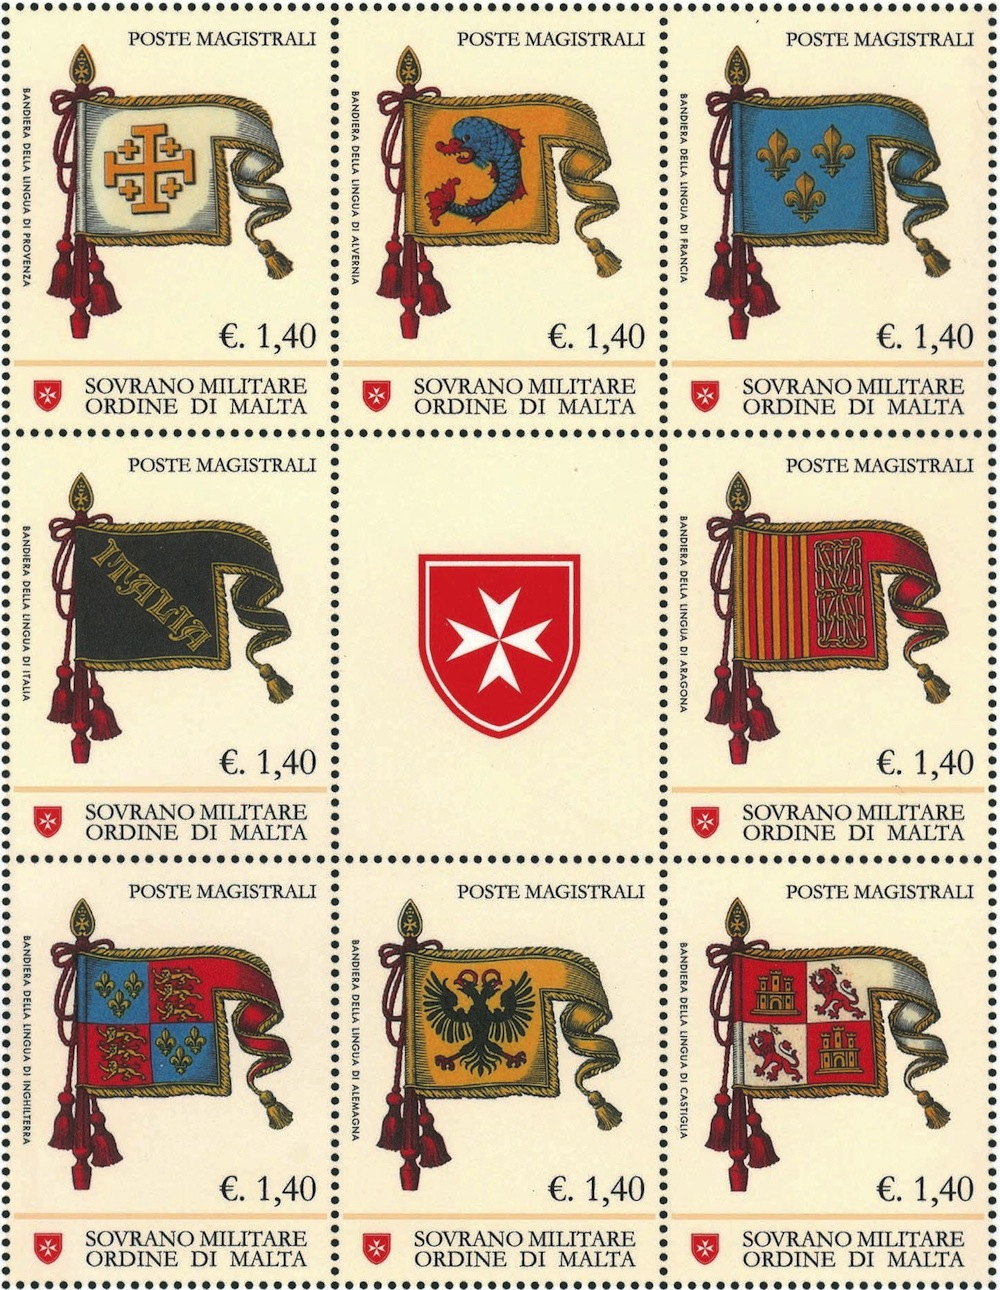 The Ancient Languages of the Knights